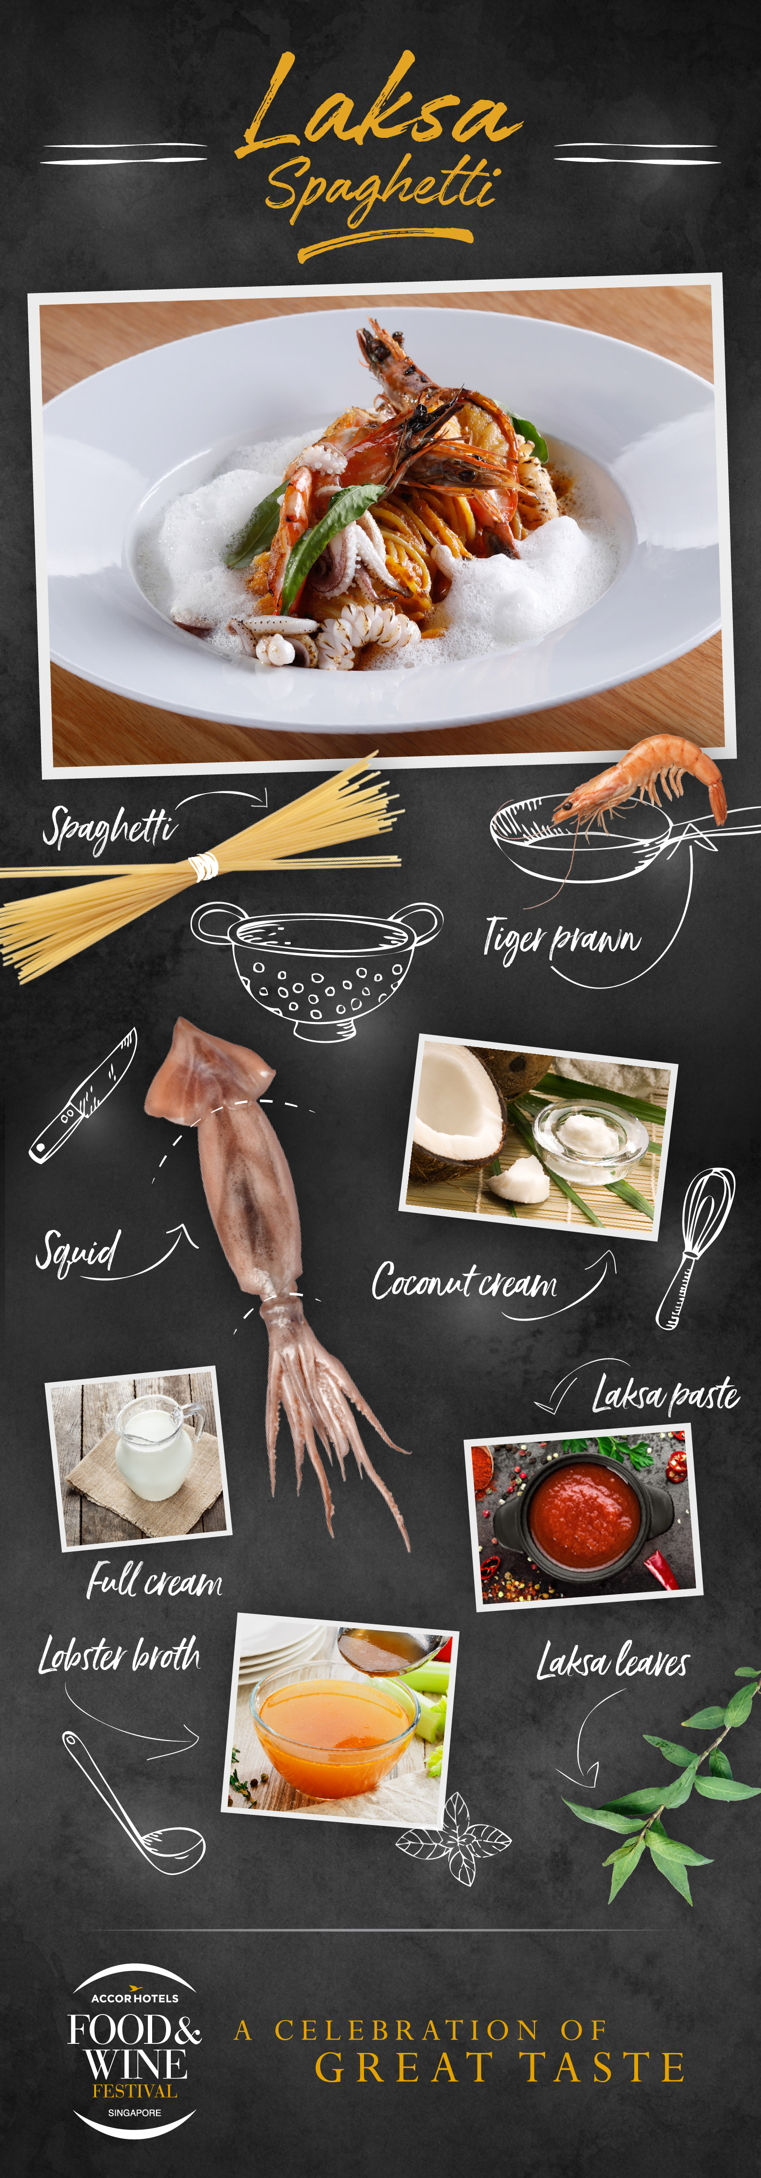 an infographic illustrating the ingredients in Laksa Spaghetti